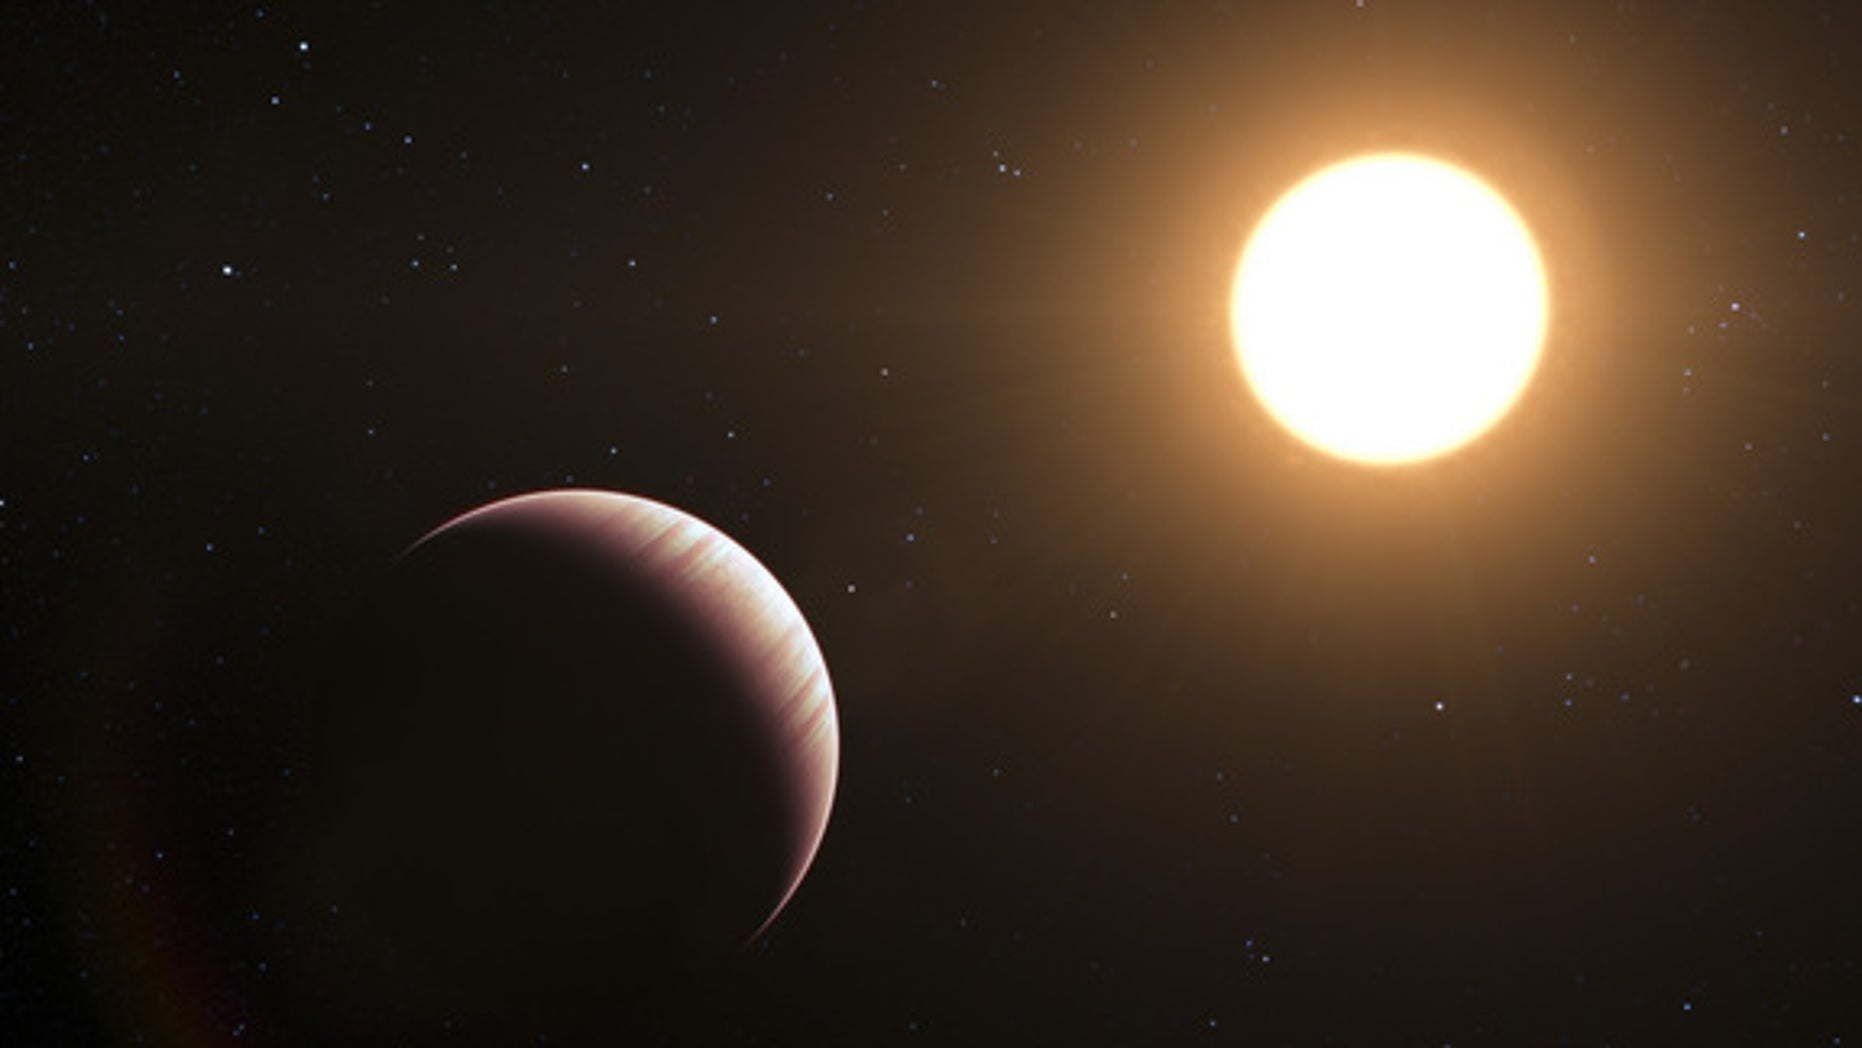 This artist's impression shows the exoplanet Tau Boötis b. This was one of the first exoplanets to be discovered back in 1996, and it is still one of the closest planetary systems known to date. Astronomers using ESO's Very Large Telescope have now caught and studied the faint light from the planet Tau Boötis b for the first time. By employing a clever observational trick the team find that the planet's atmosphere seems to be cooler higher up, the opposite of what was expected.